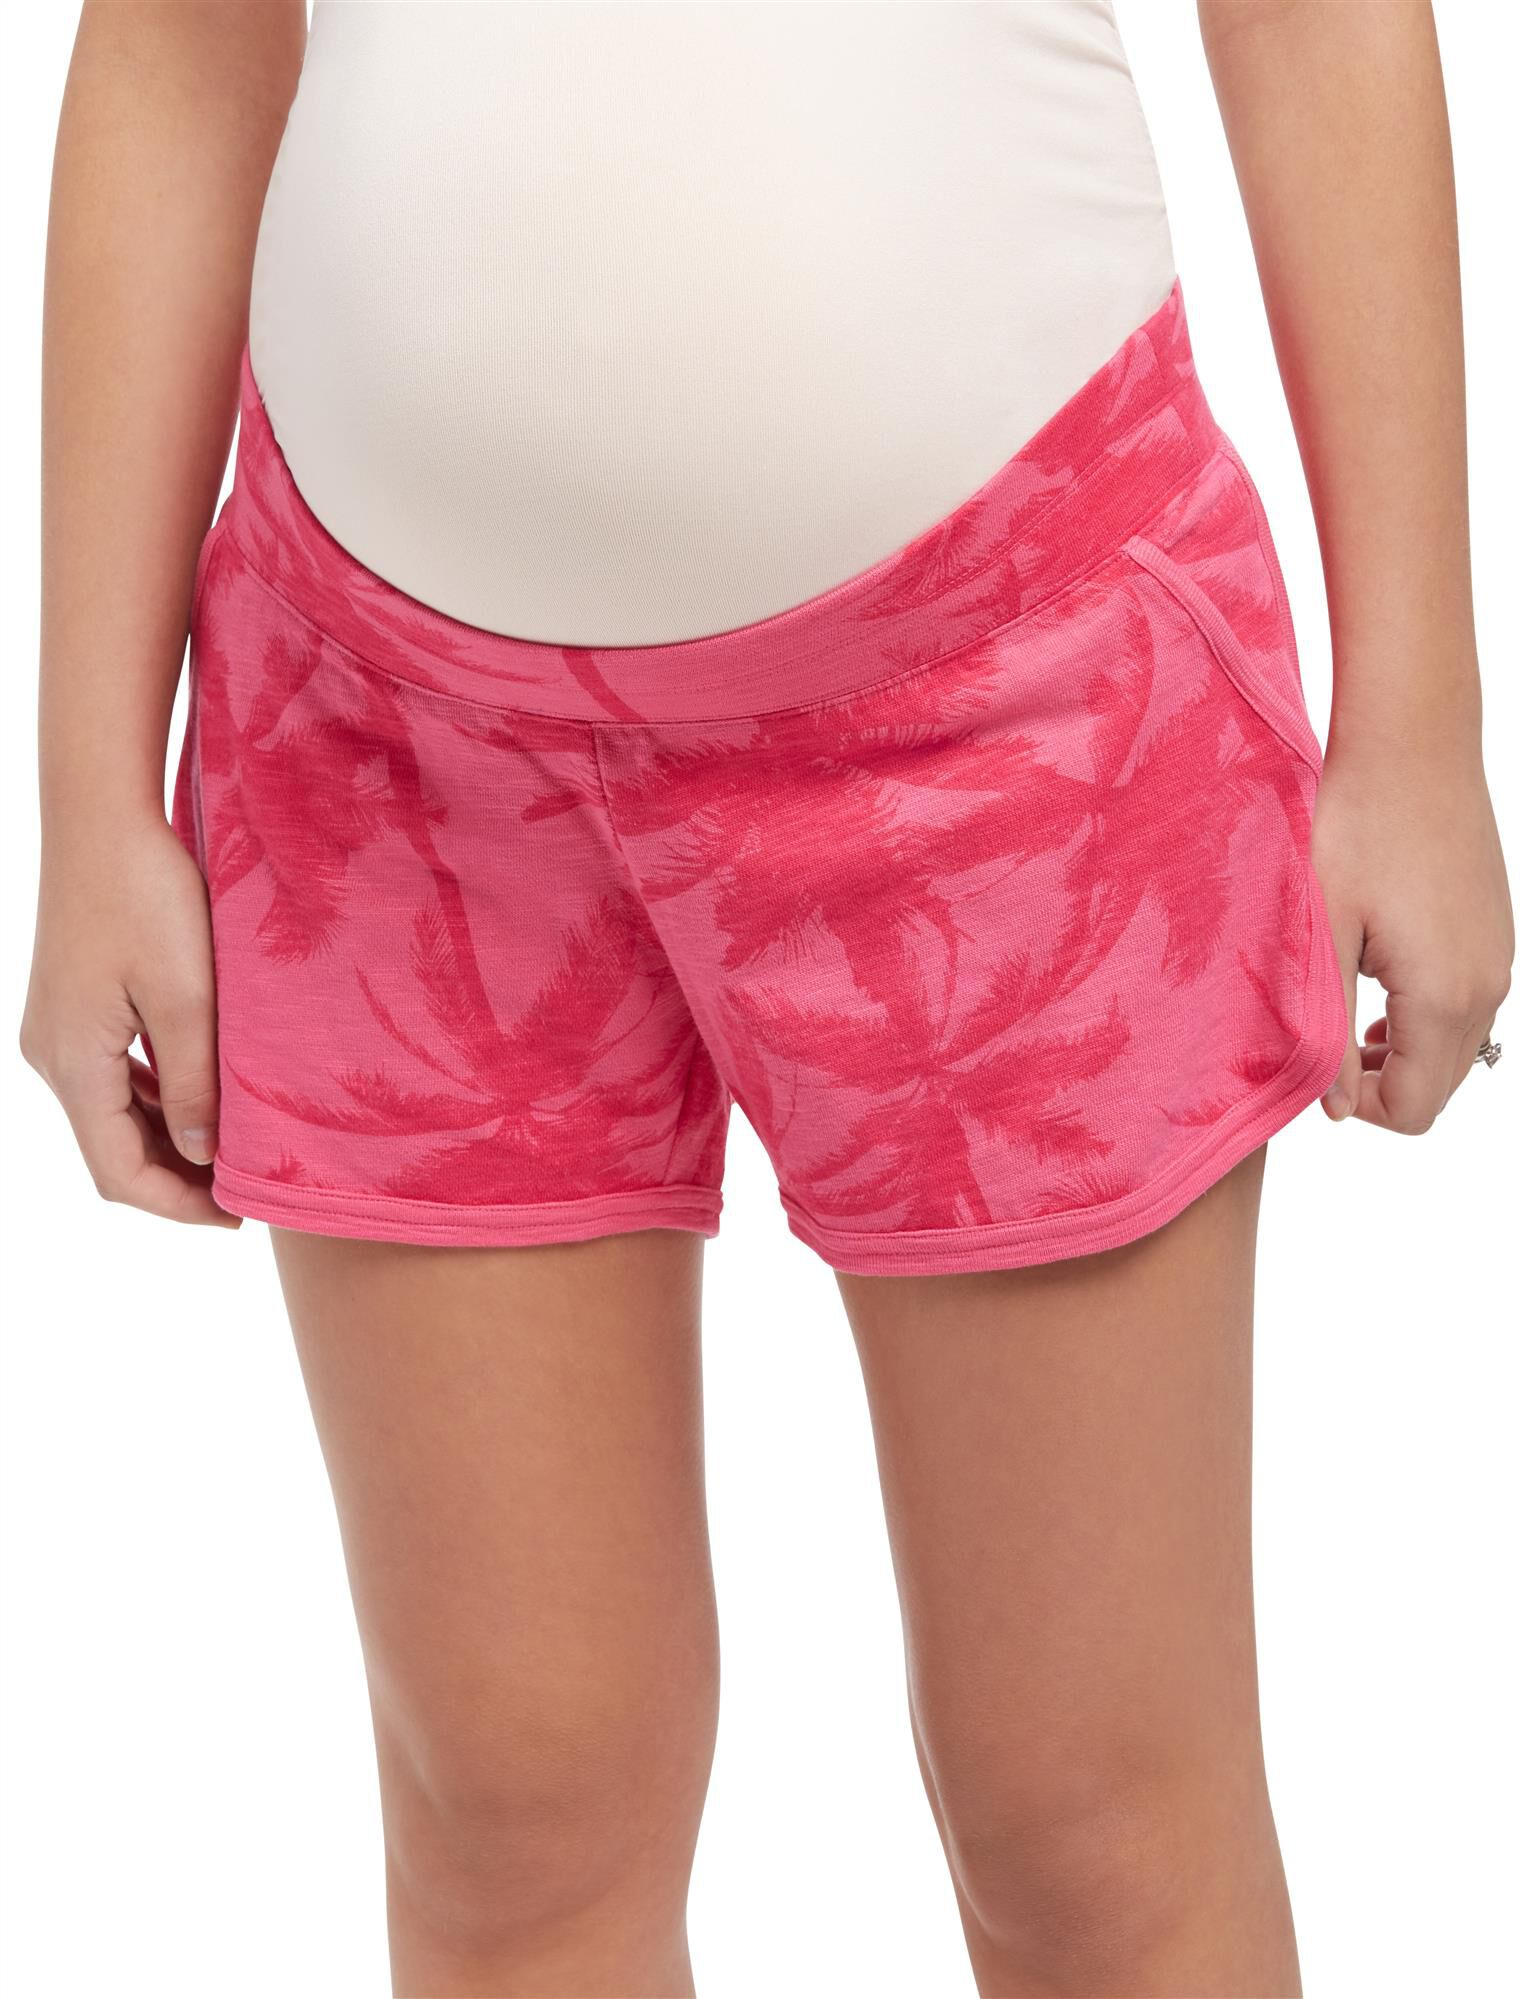 Under Belly French Terry Maternity Shorts- Pink Palm Print